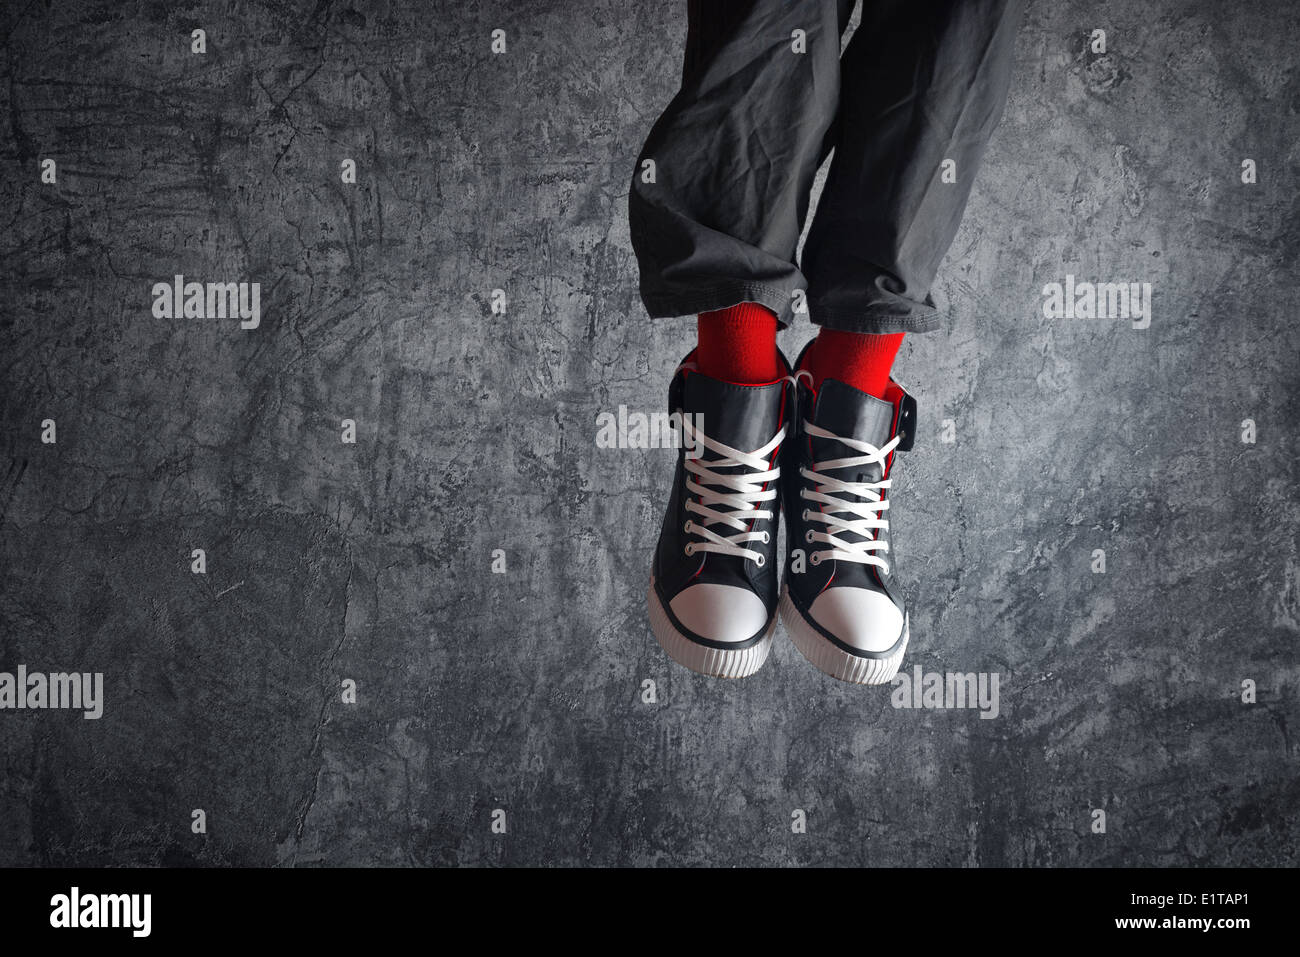 Excited man in sneakers jumping high in the air. Concept of freedom and youth spirit. - Stock Image